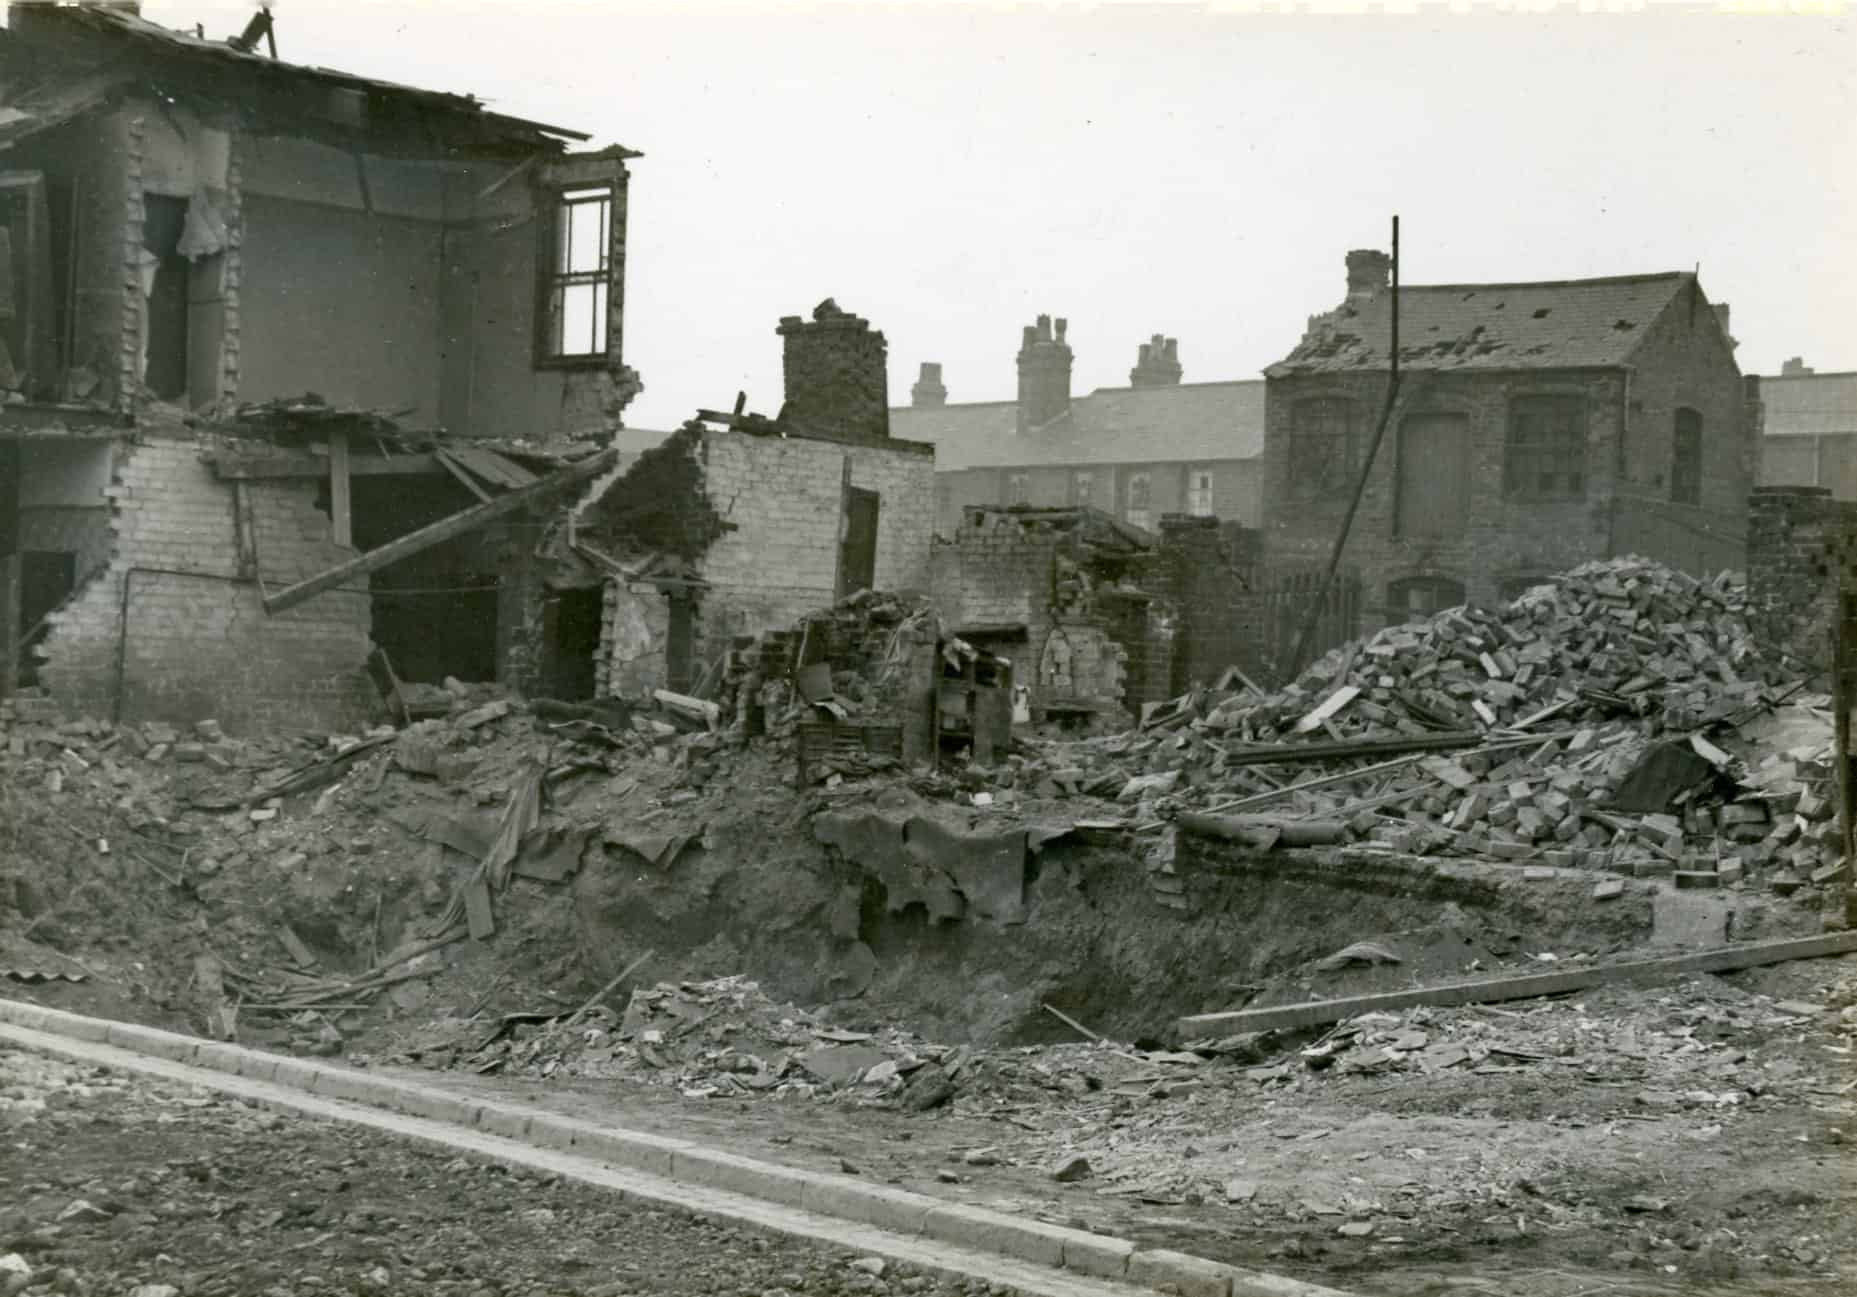 Bomb damaged houses, Smethwick. C. 1940  Photograph used with kind permission from Sandwell Community History and Archive Service